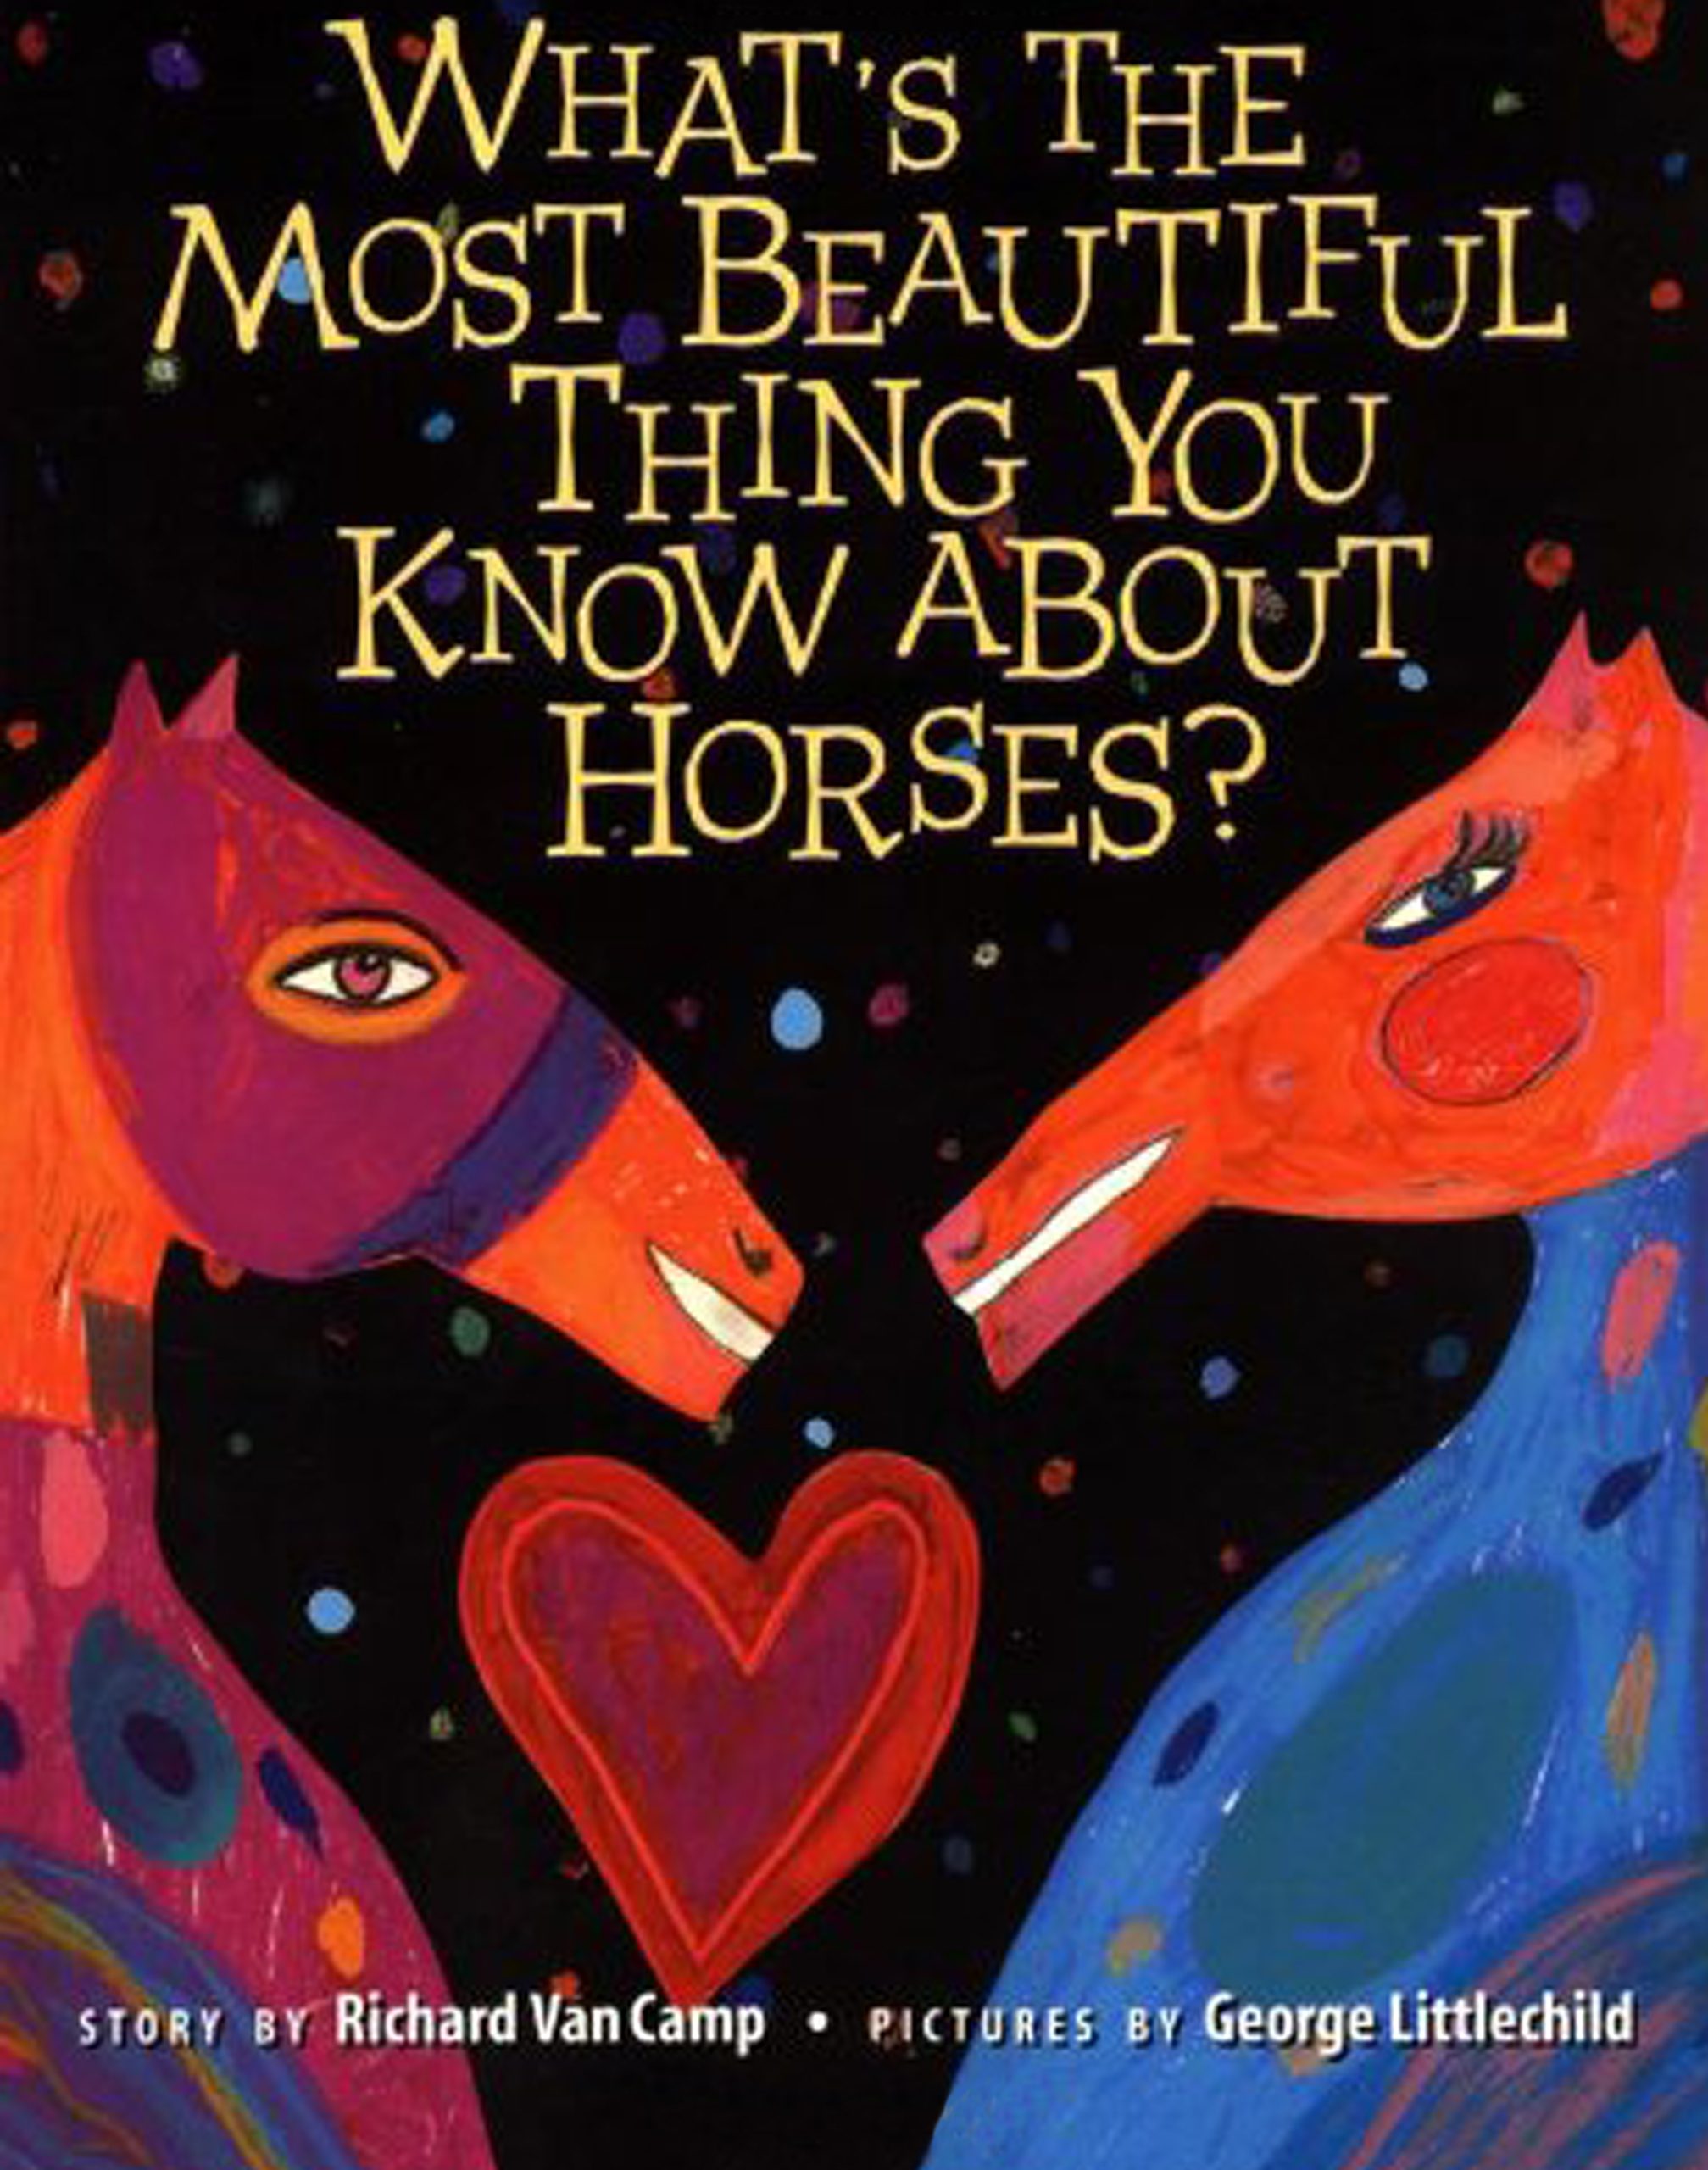 What's The Most Beautiful Thing You Know About Horses? by Richard VanCamp